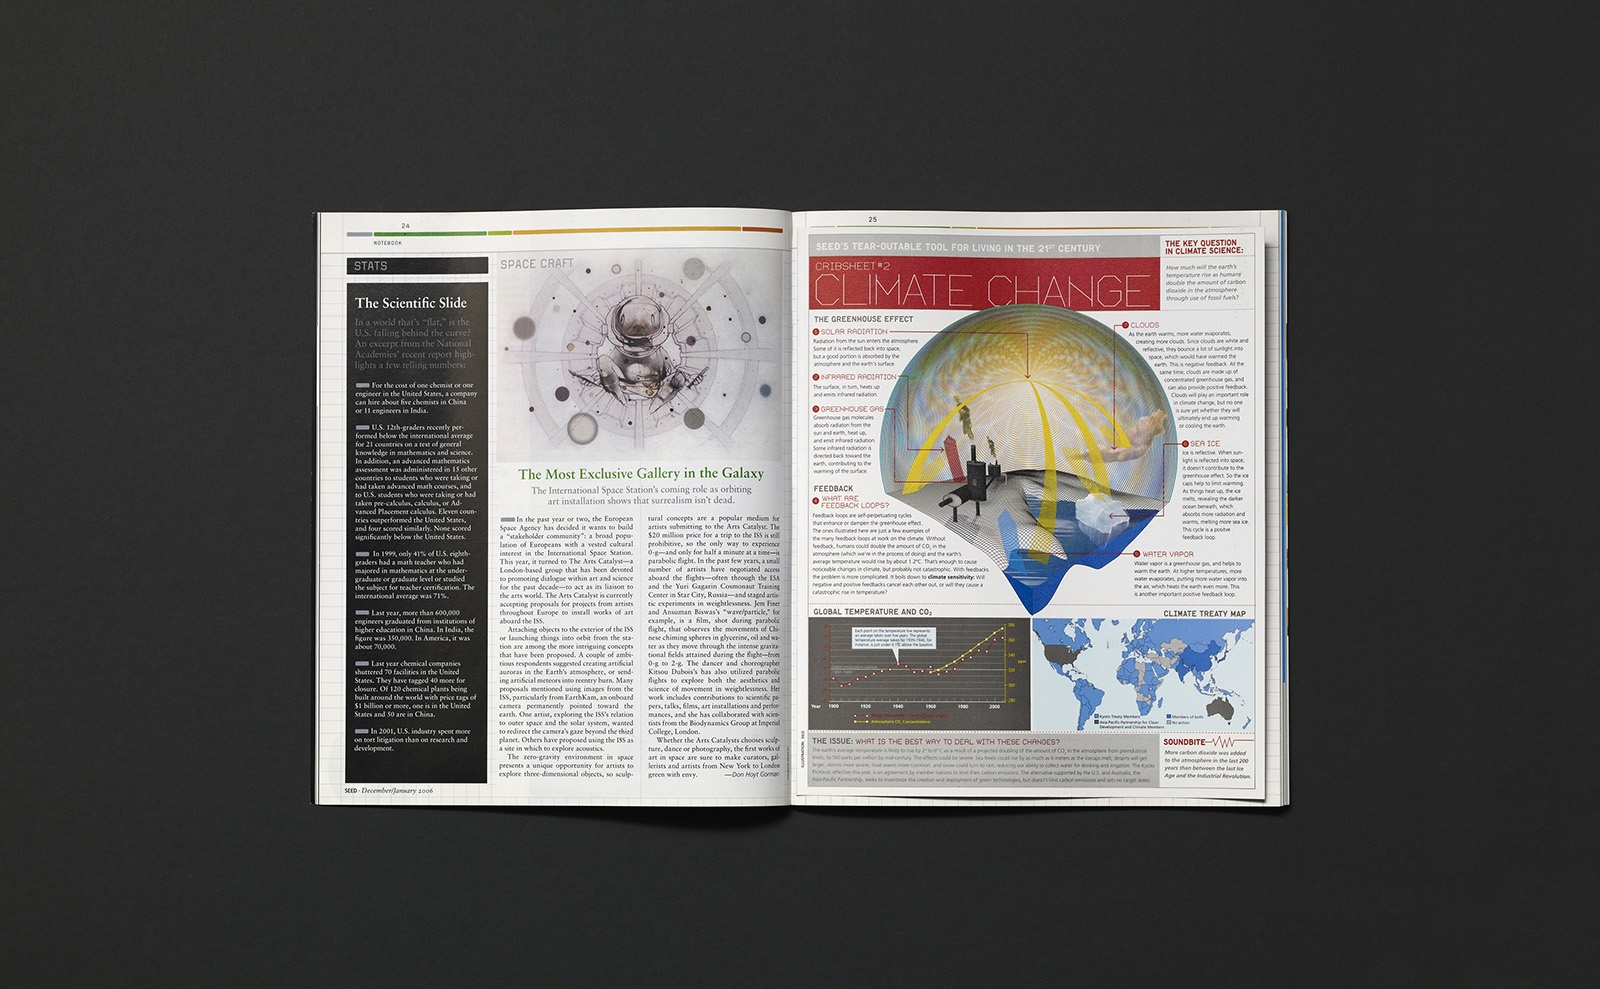 SEED magazine climate change infographic